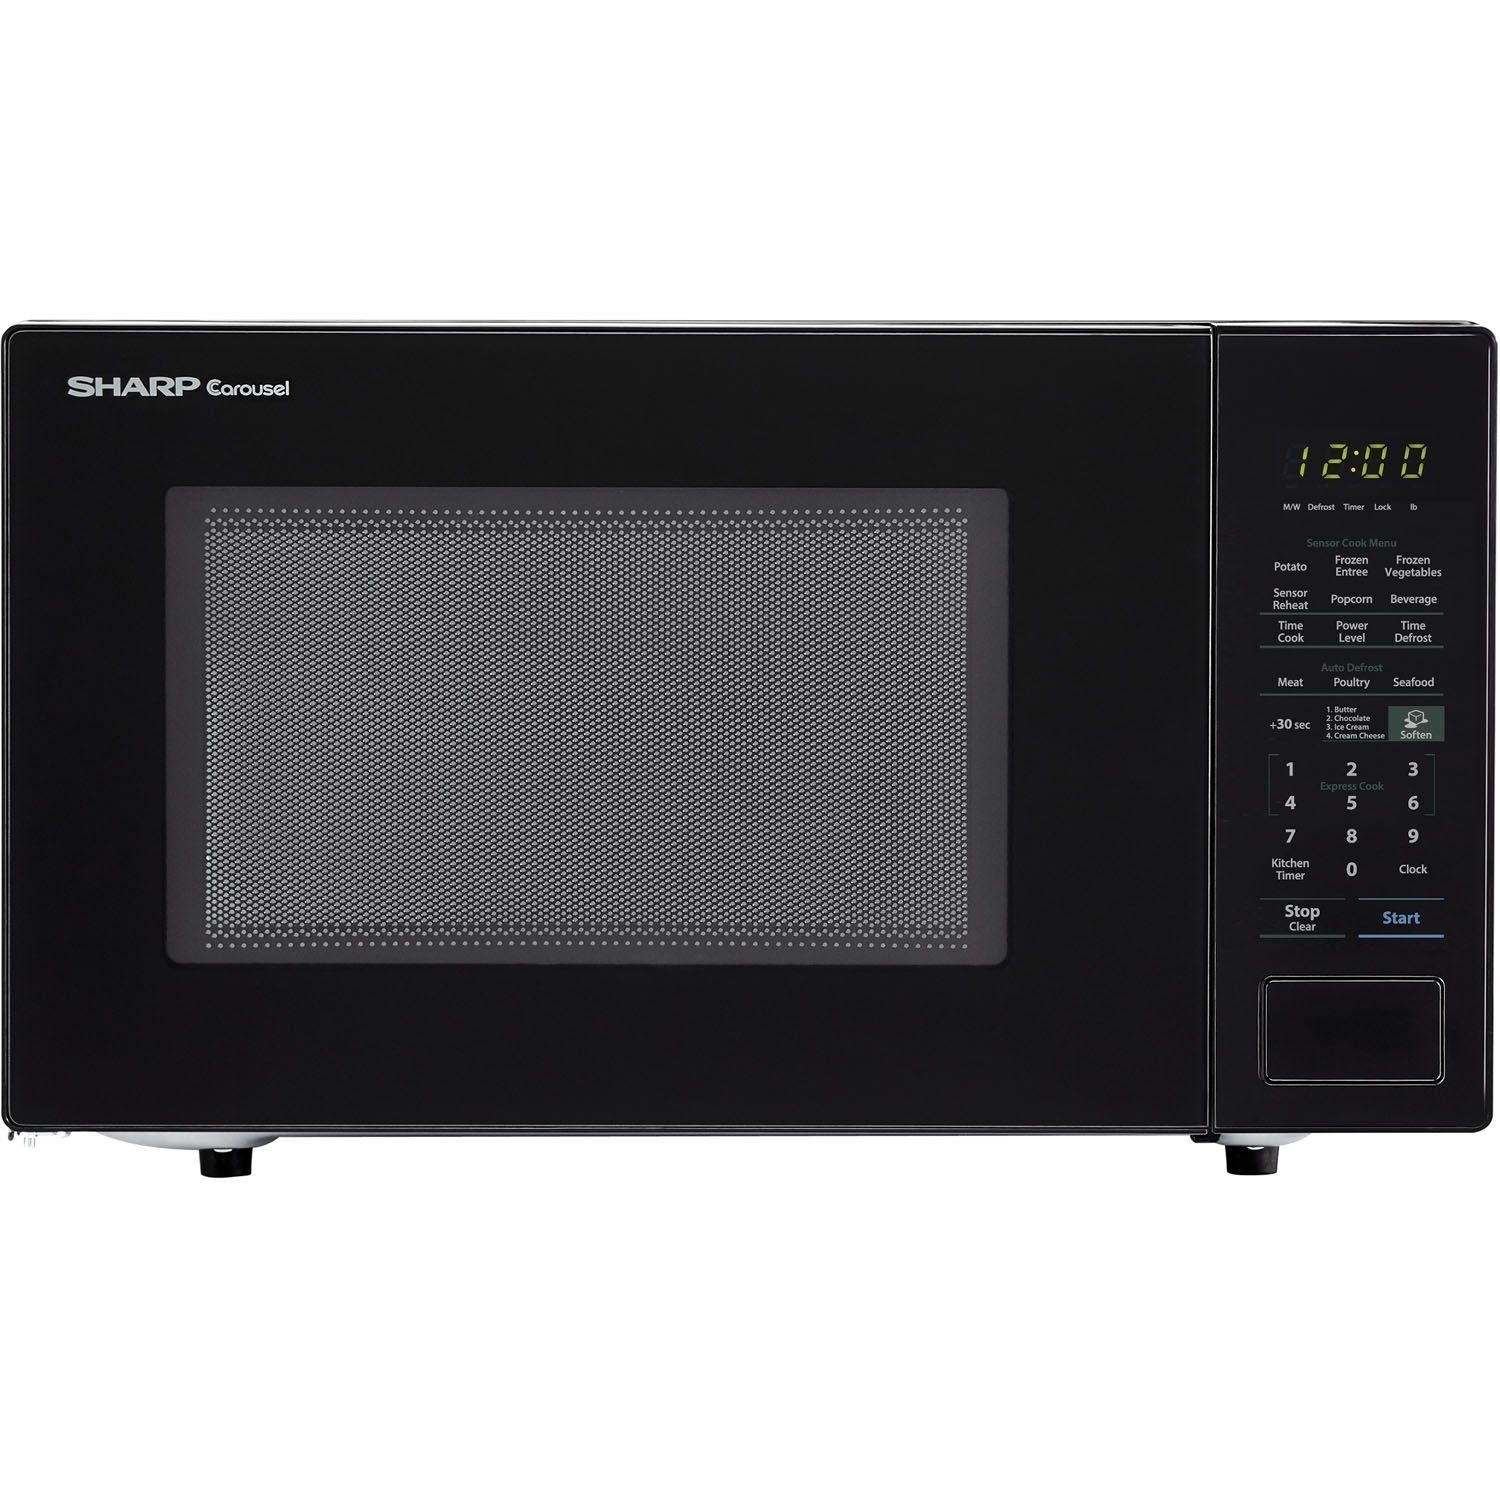 Sharp Carousel 1 4 Cu Ft 1000w Countertop Microwave Oven In